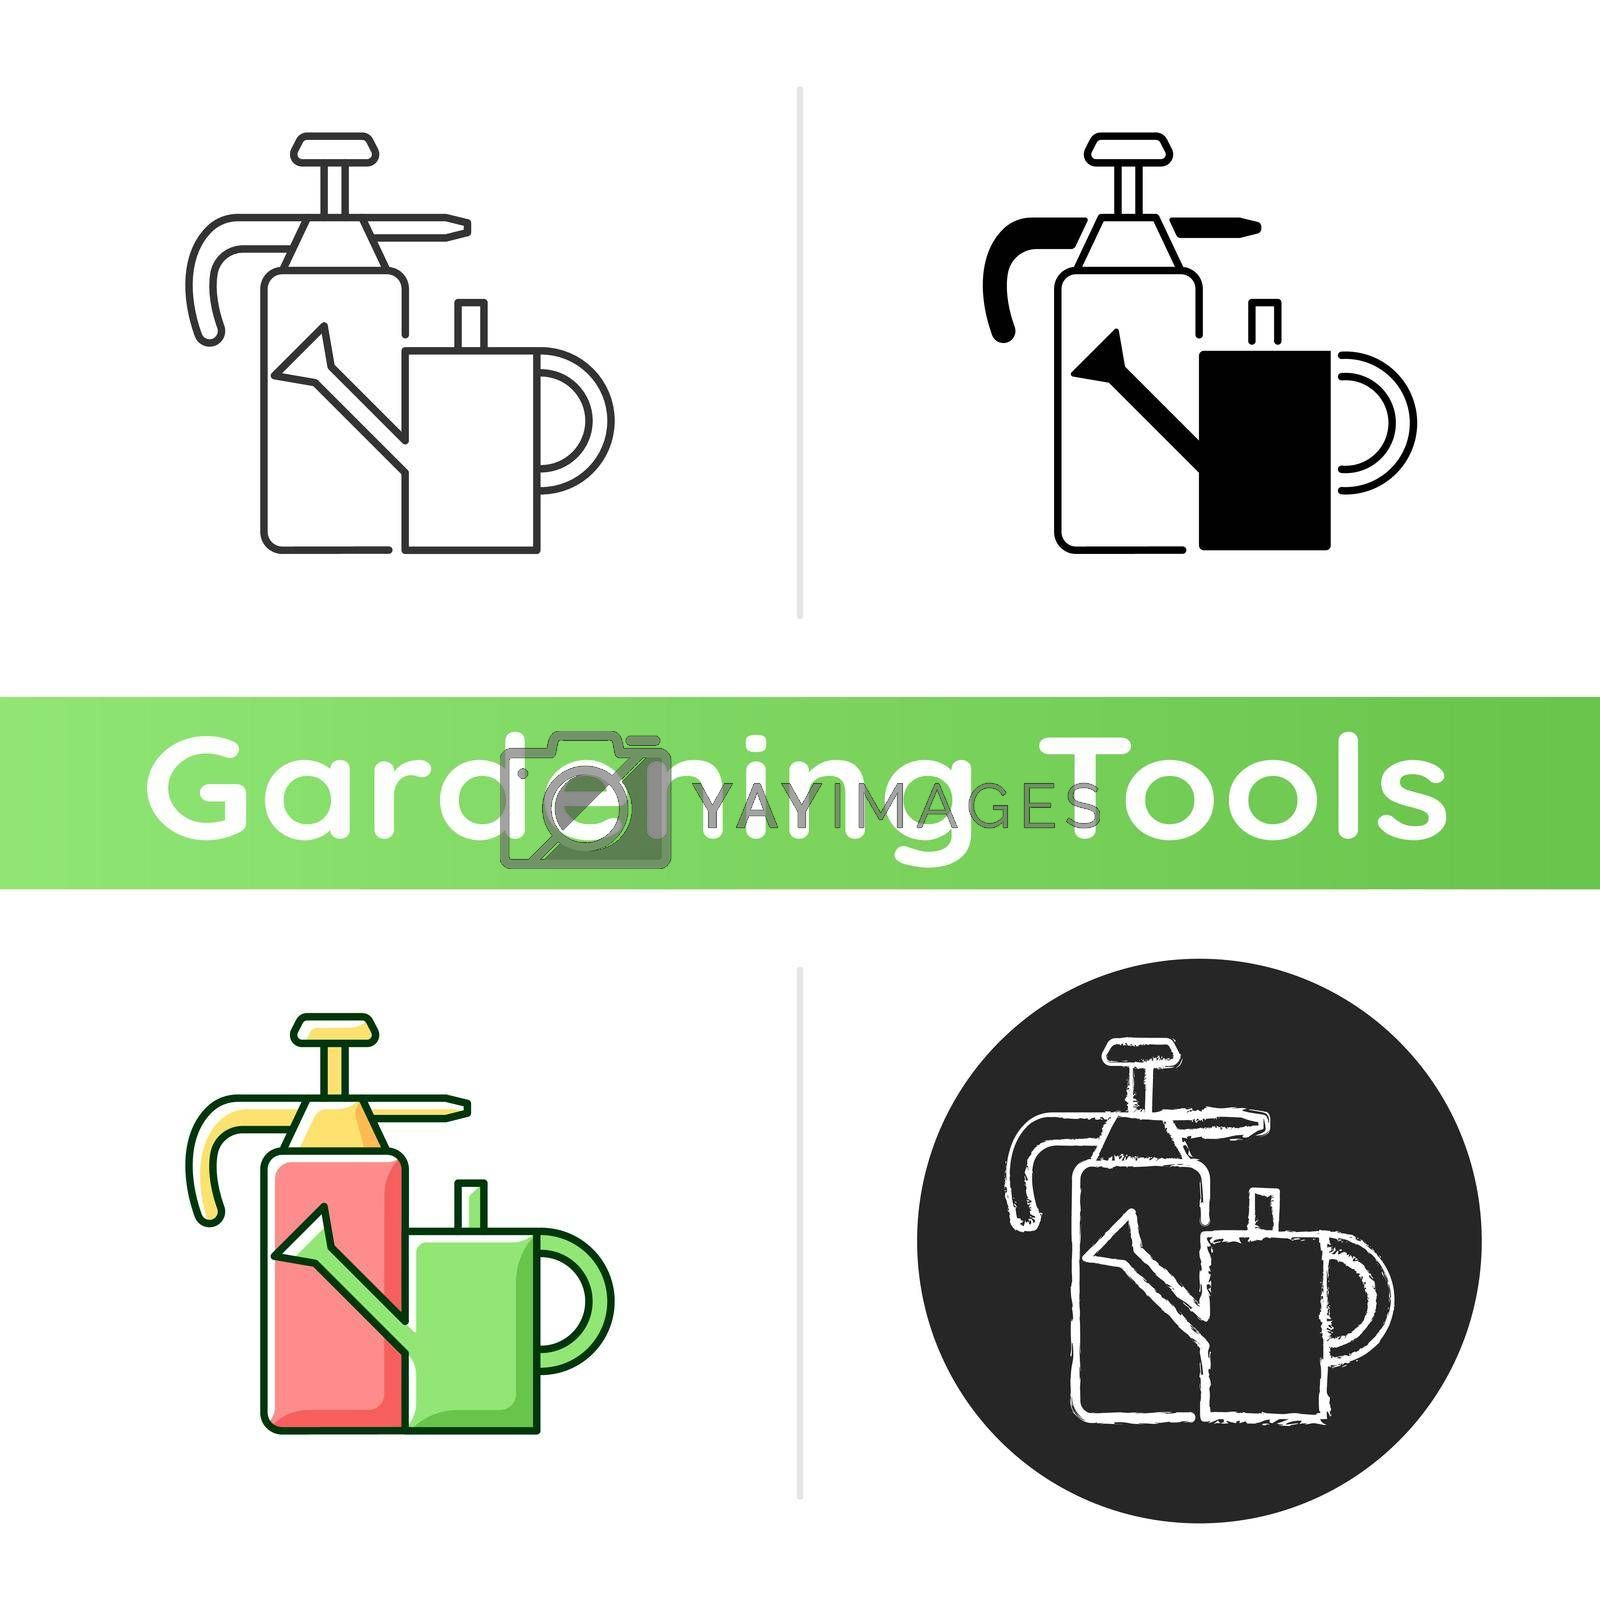 Watering can and hand sprayer icon. Healthy garden maintenance. Fertilizers, herbicides application. Horticultural purposes. Linear black and RGB color styles. Isolated vector illustrations